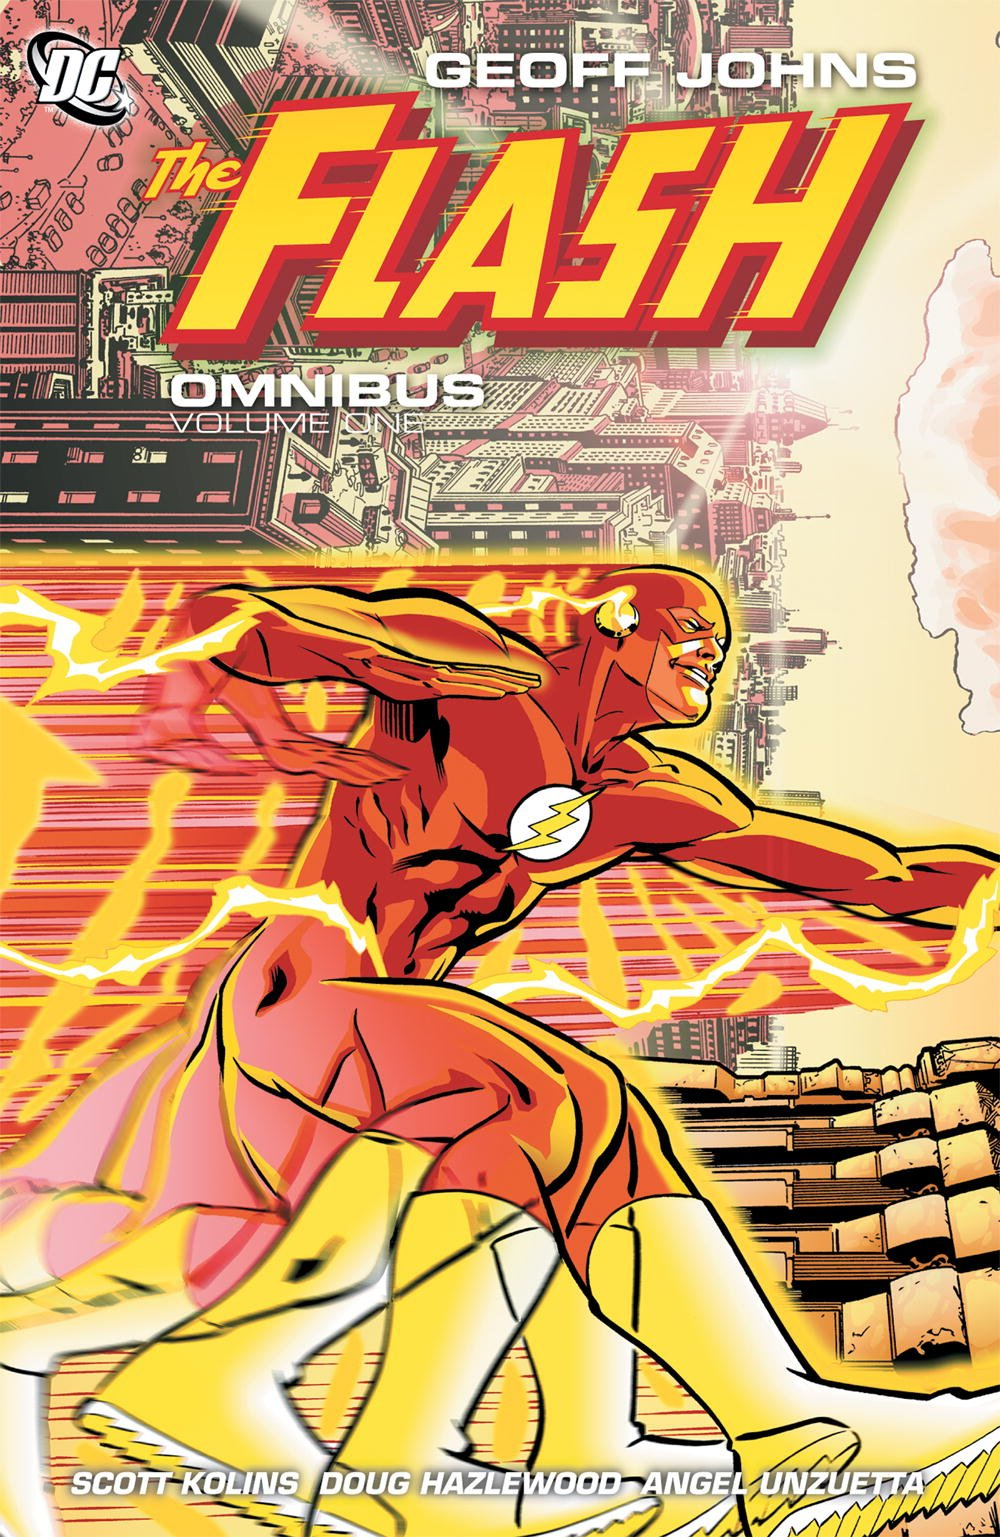 DC First: Flash and Superman #1 Added to New Printing of Geoff Johns' Flash Omnibus Vol 1